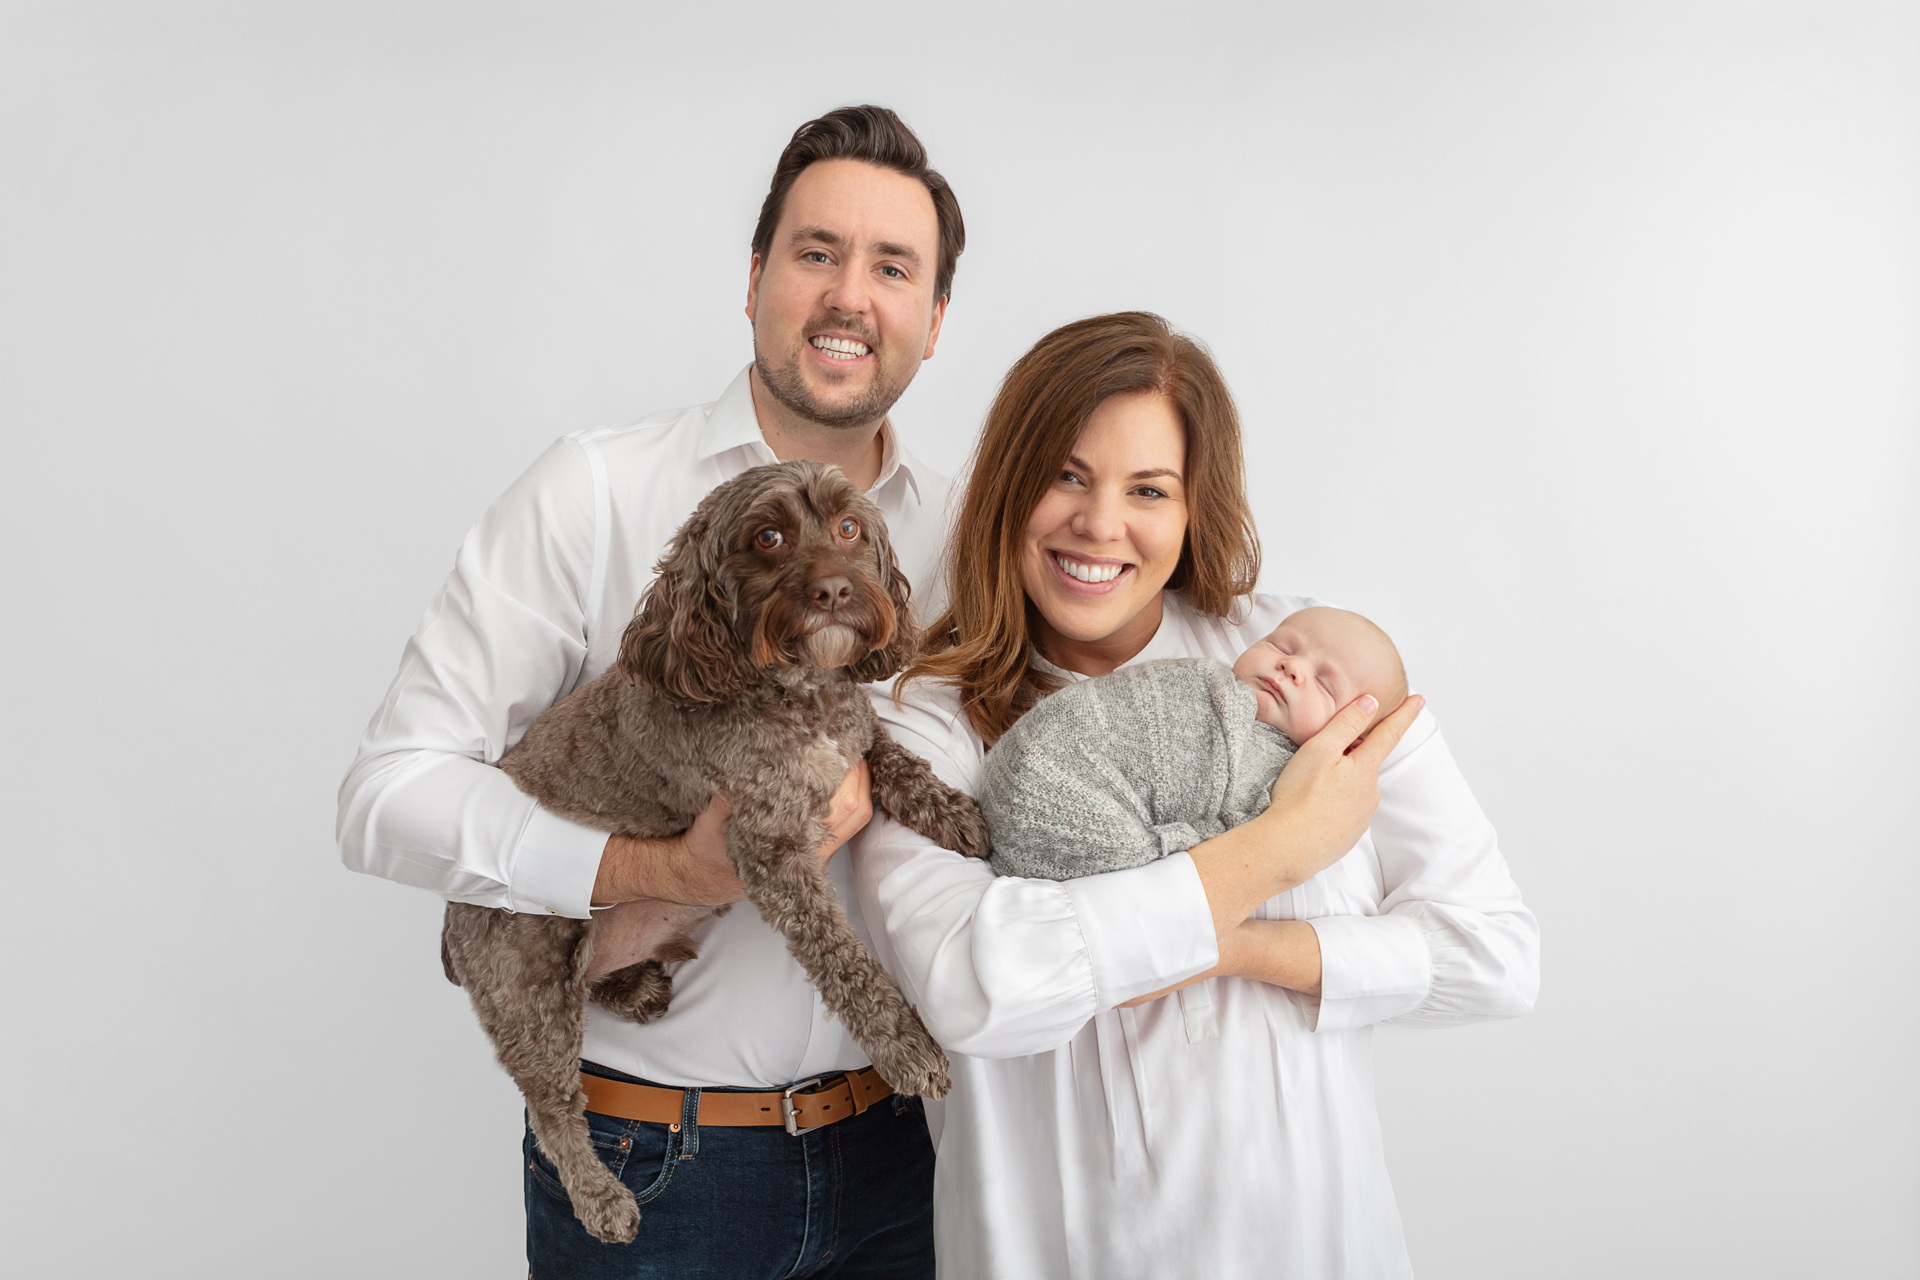 smiling new family of four; cockapoo, dad, mom, and baby boy; newborn family portrait with dog